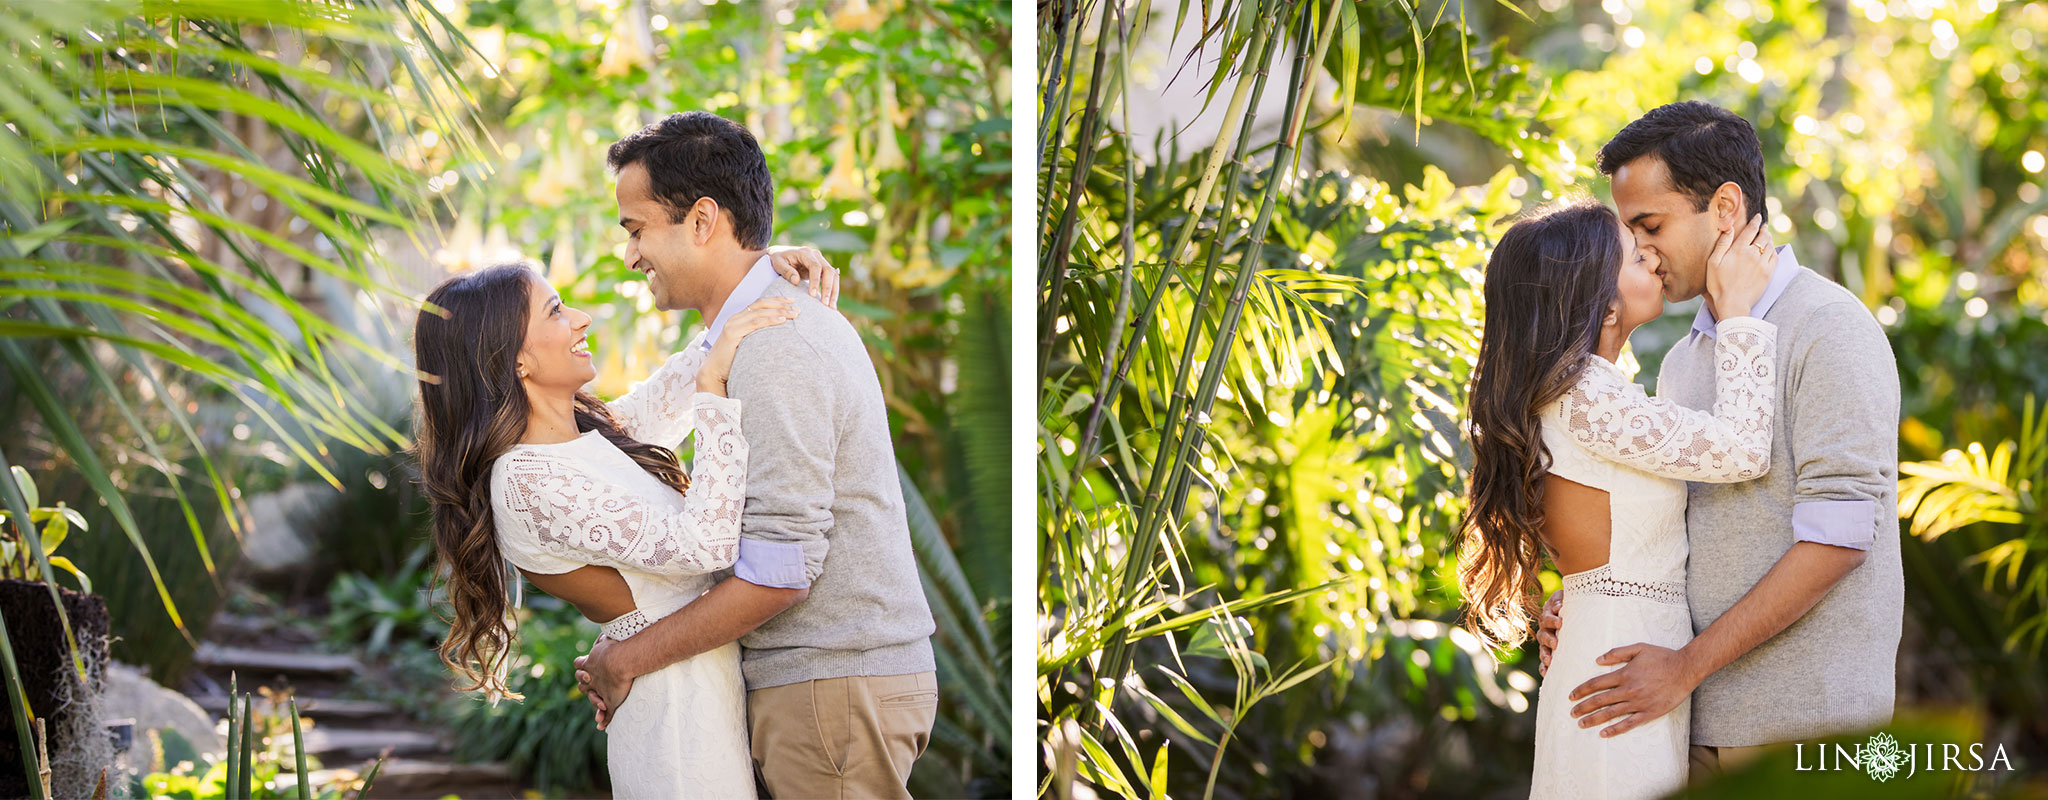 02 Newport Beach Vineyards and Winery Engagement Photography